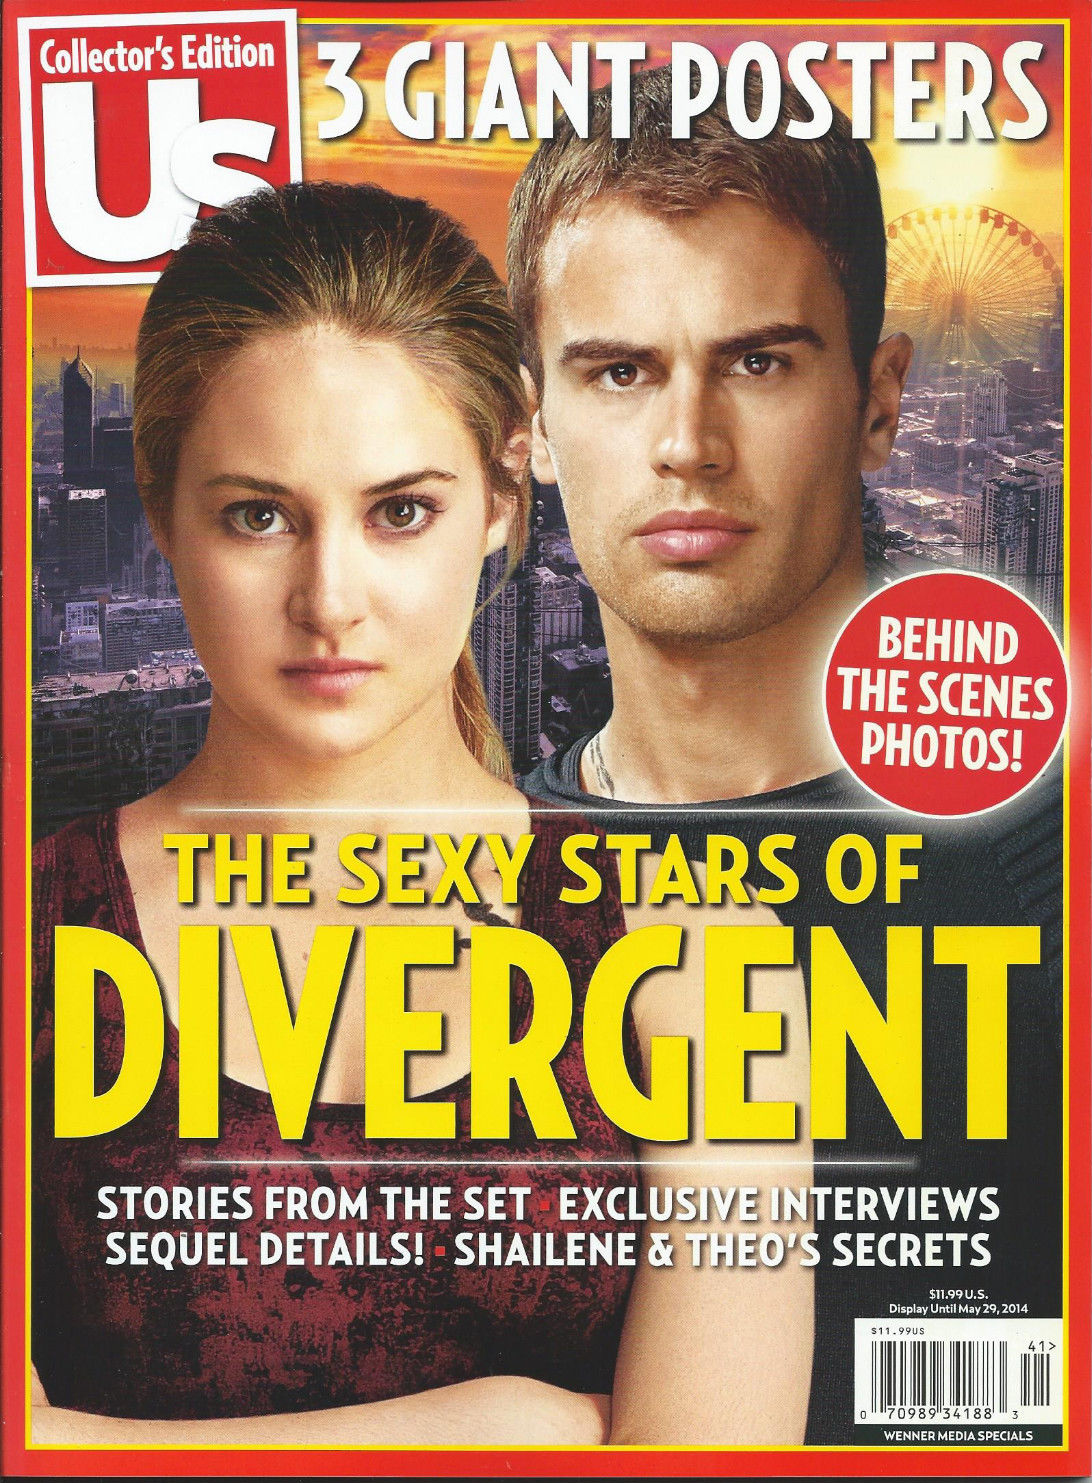 Are shailene and theo still dating after a year 9